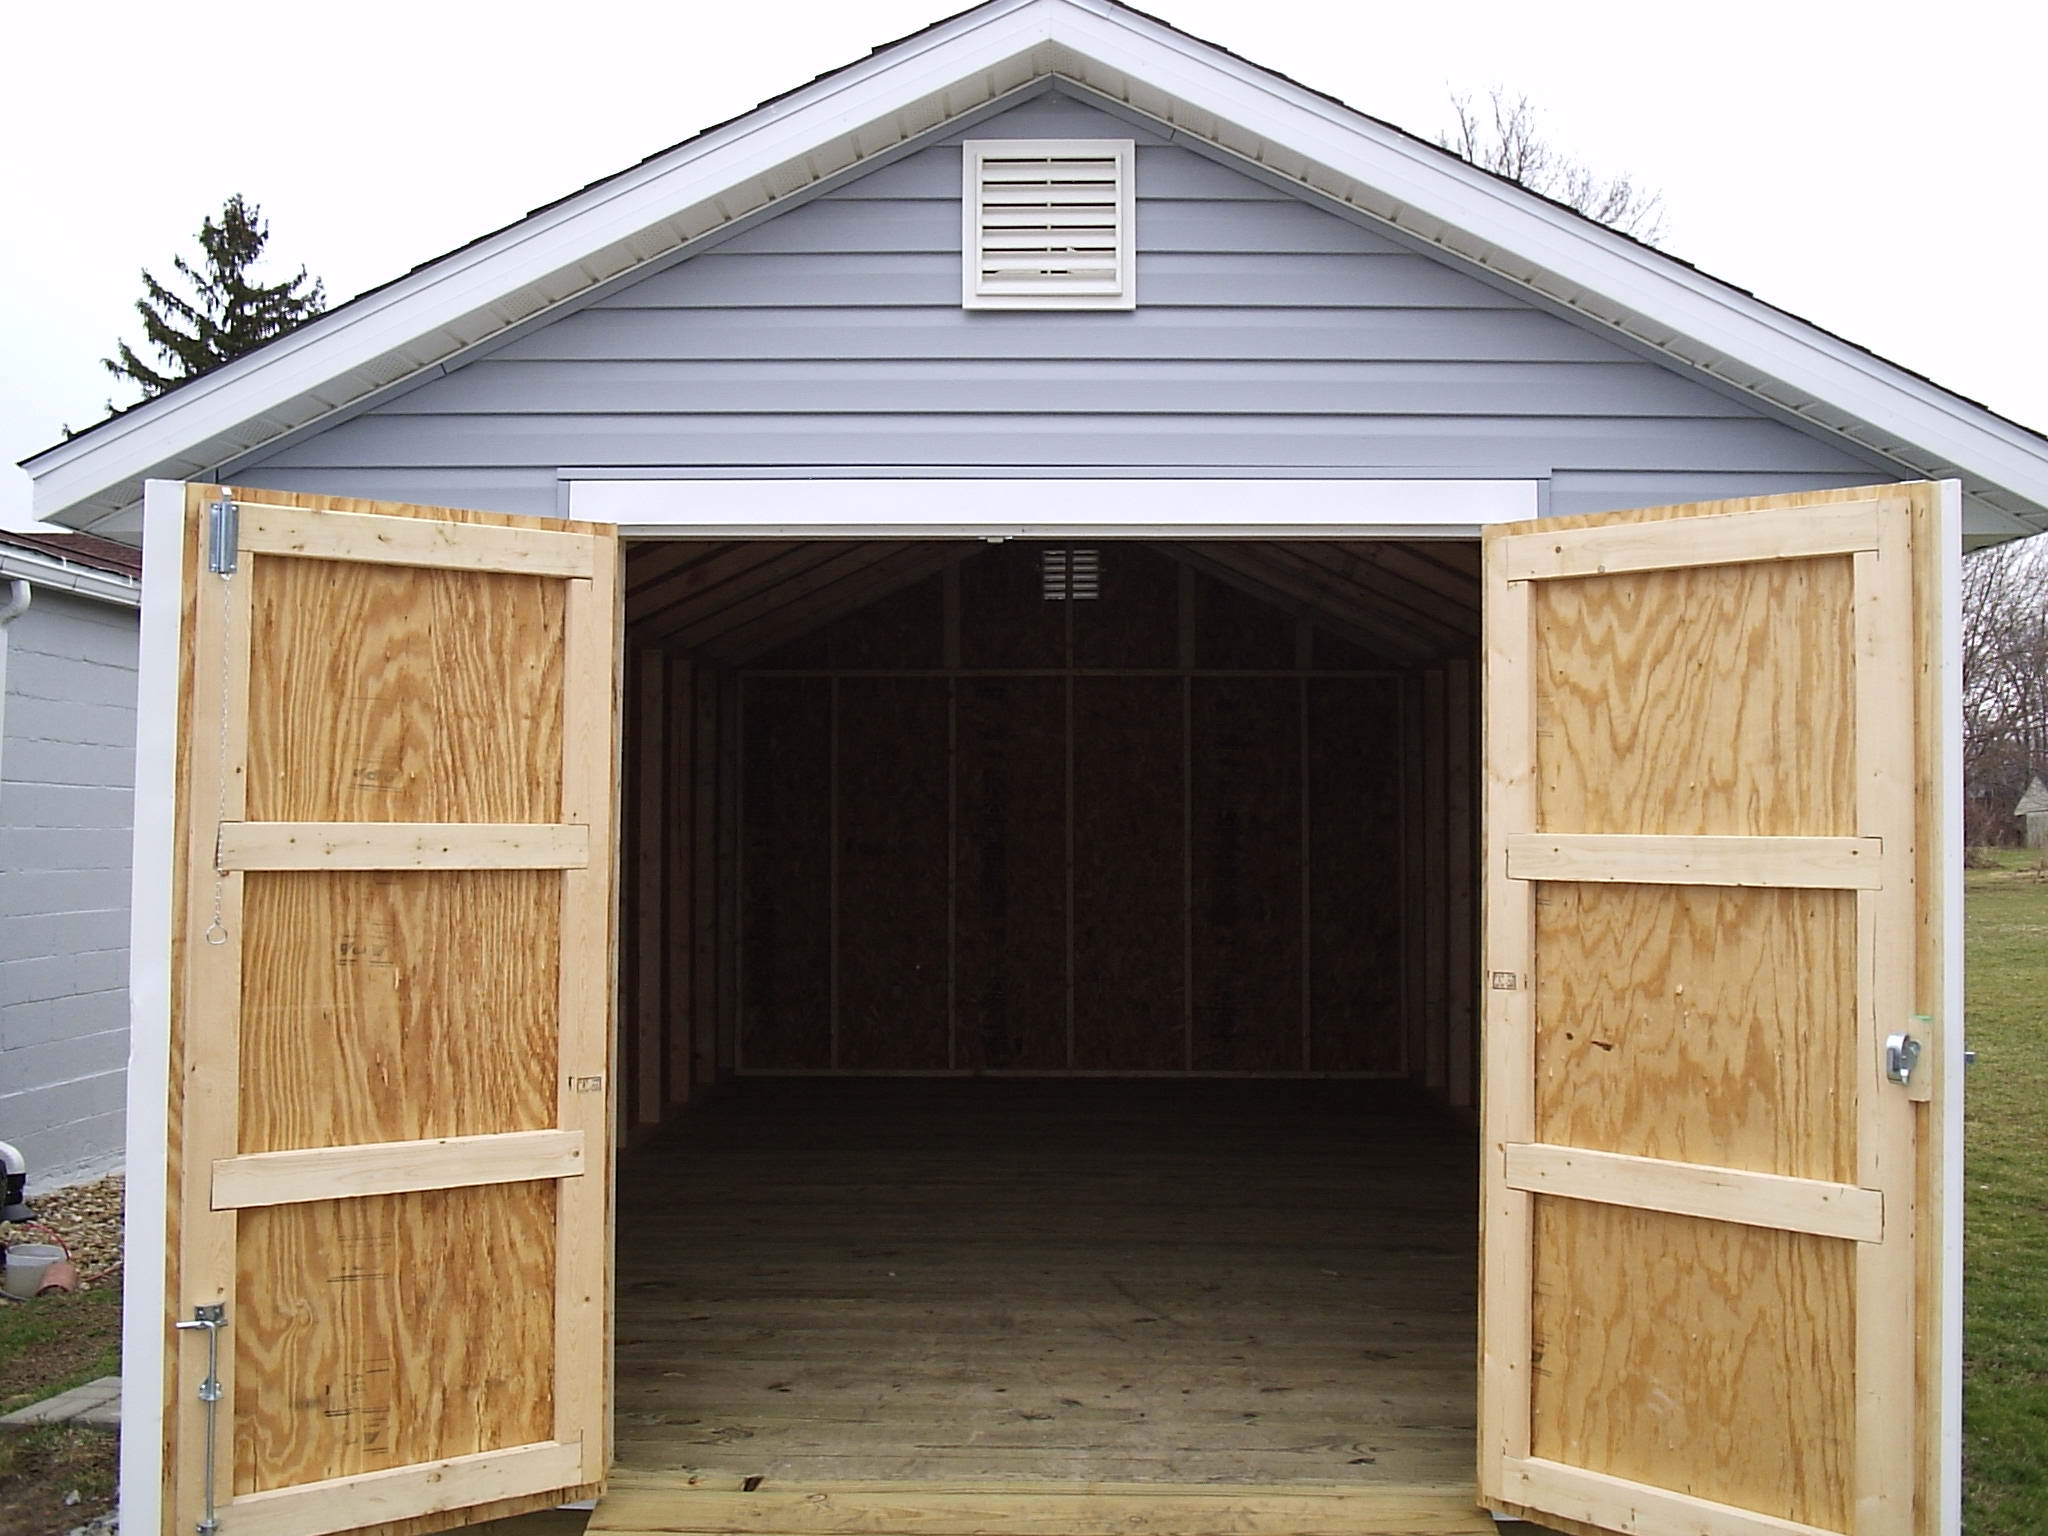 How to make a garden shed plans quick woodworking projects for Building a storage shed